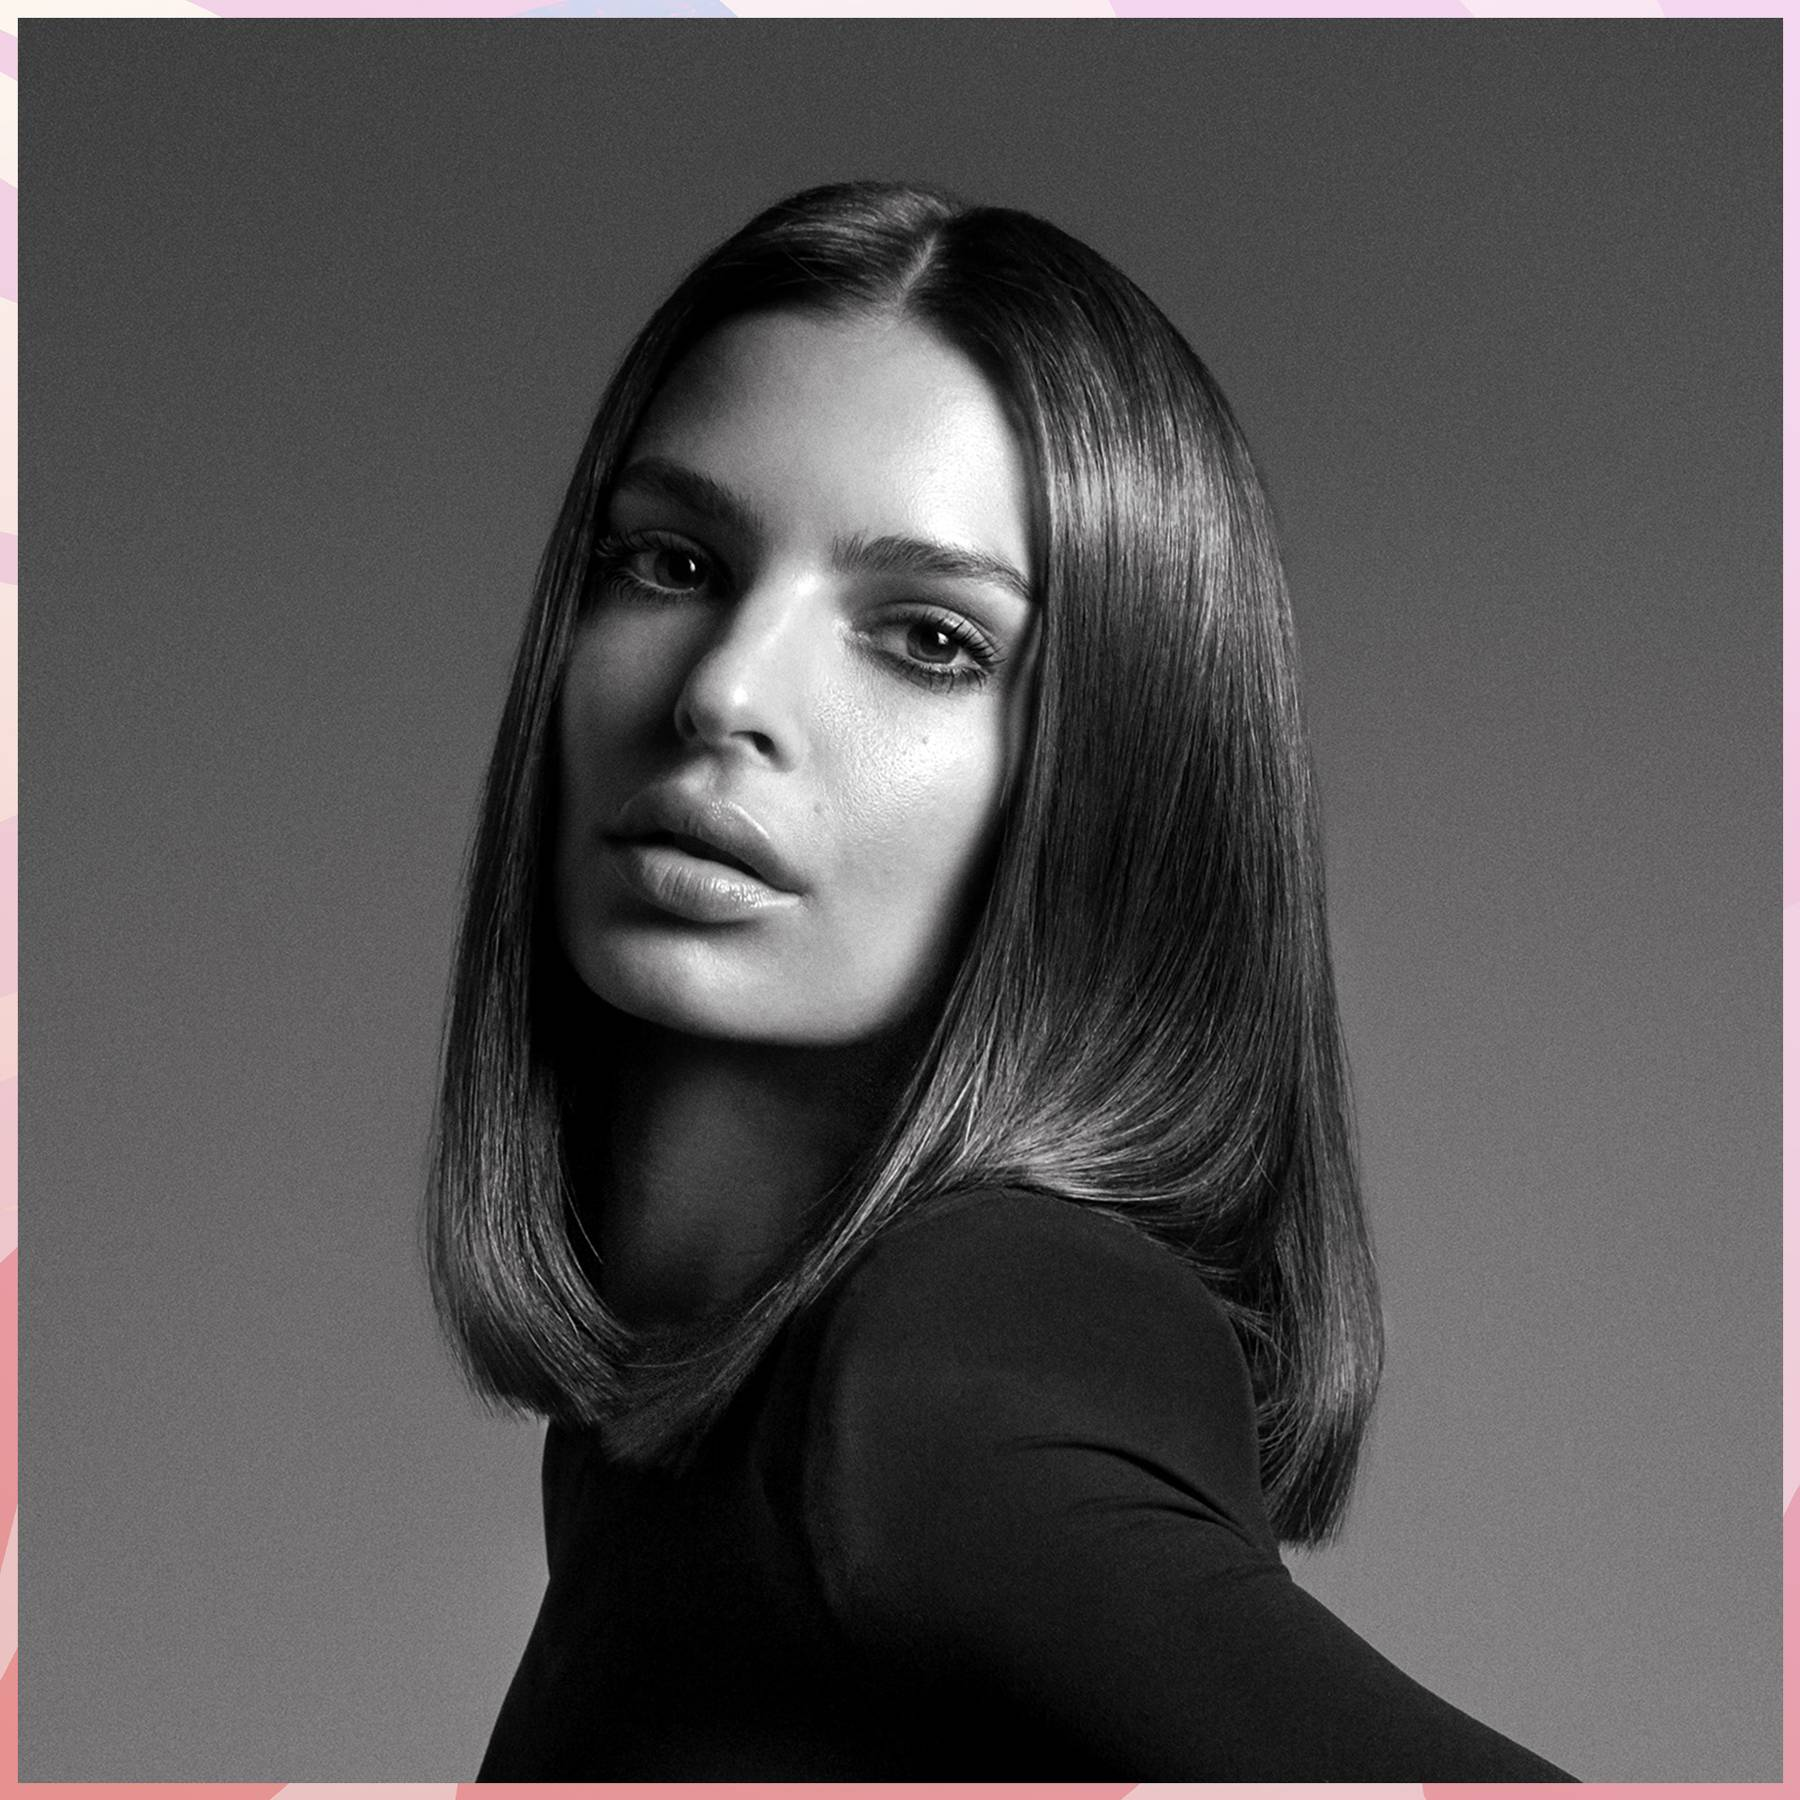 Emily Ratajkowski opens up about sustainability, women's rights and her secrets for great hair